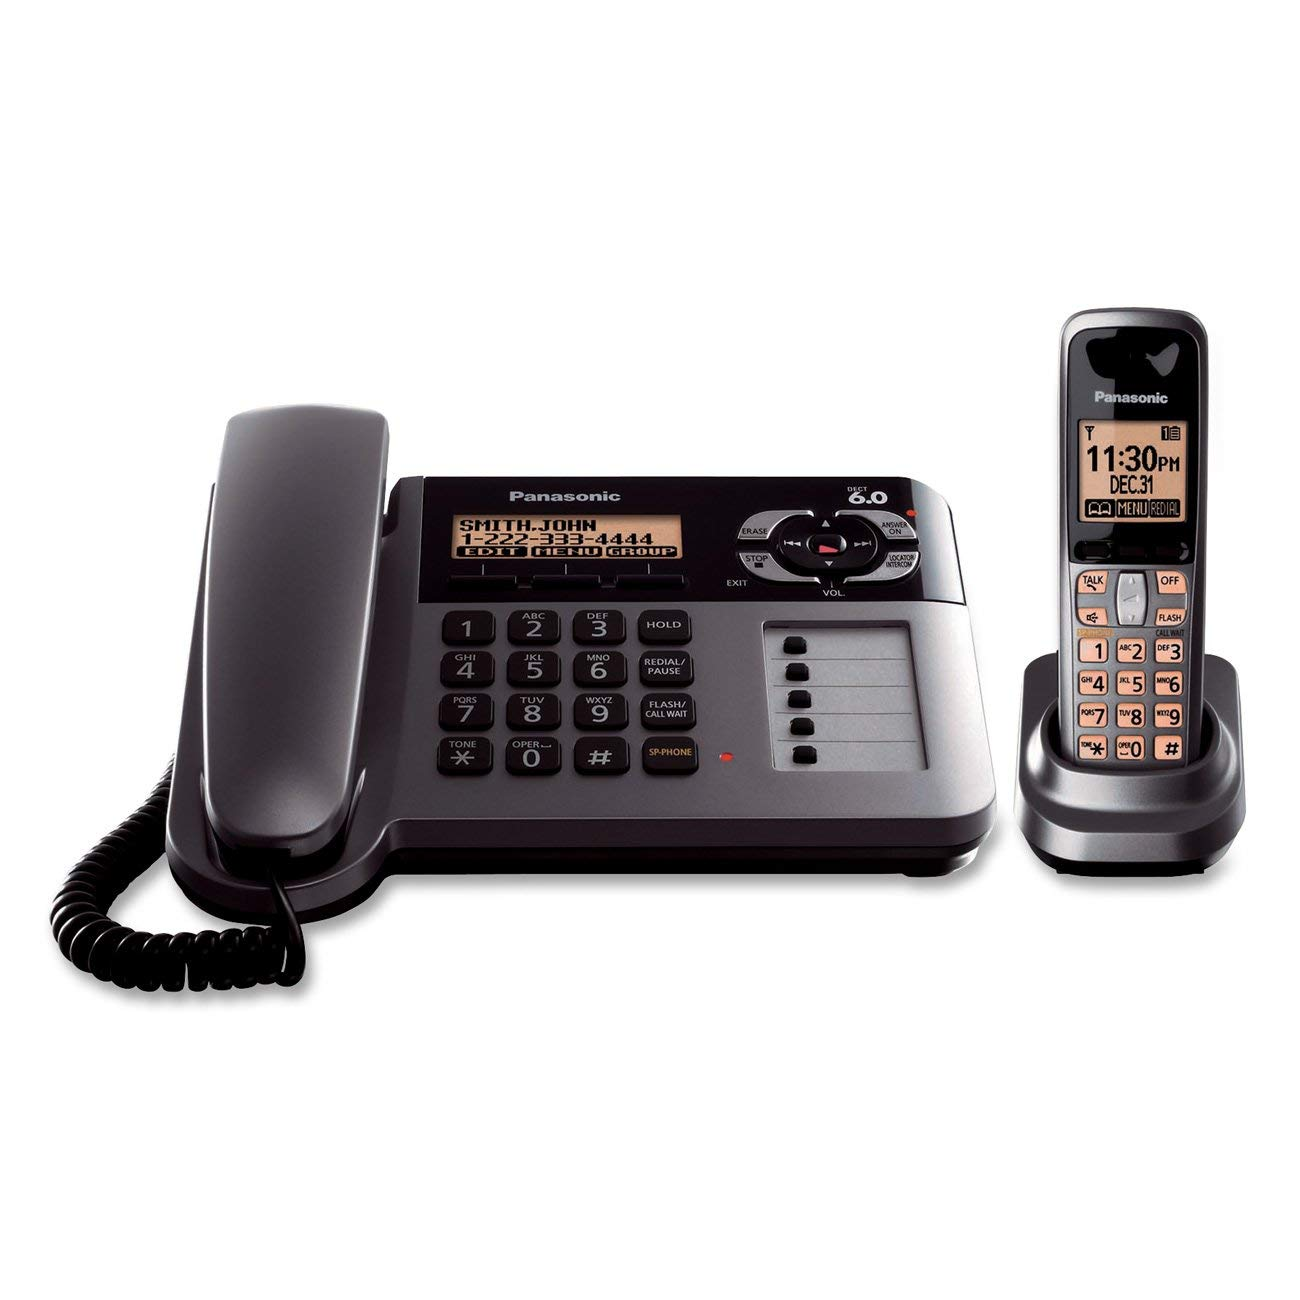 Panasonic KX-TG1061M Cordless Corded Phone with Answering Machine